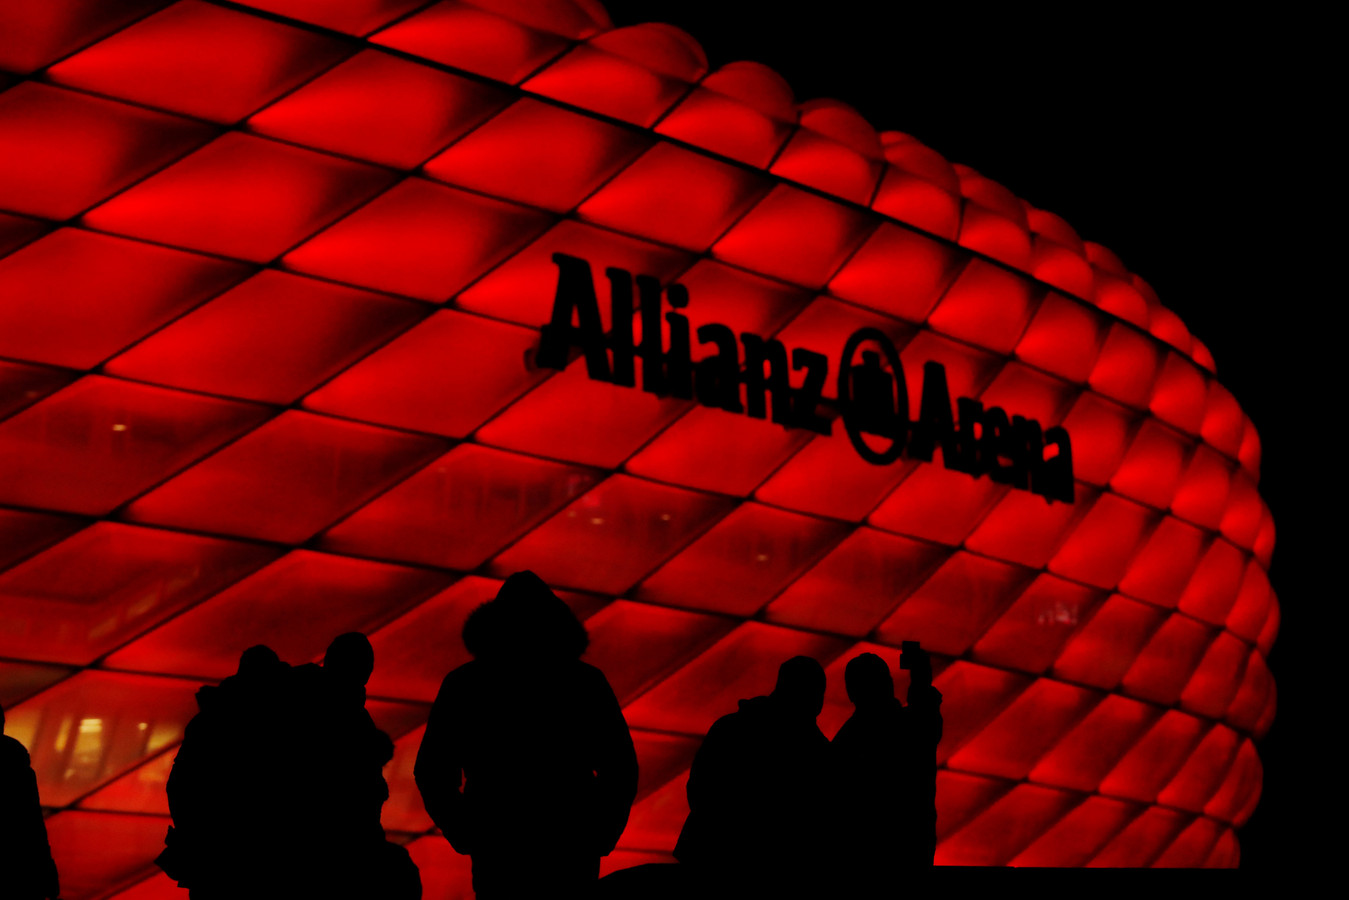 De Allianz Arena in München.